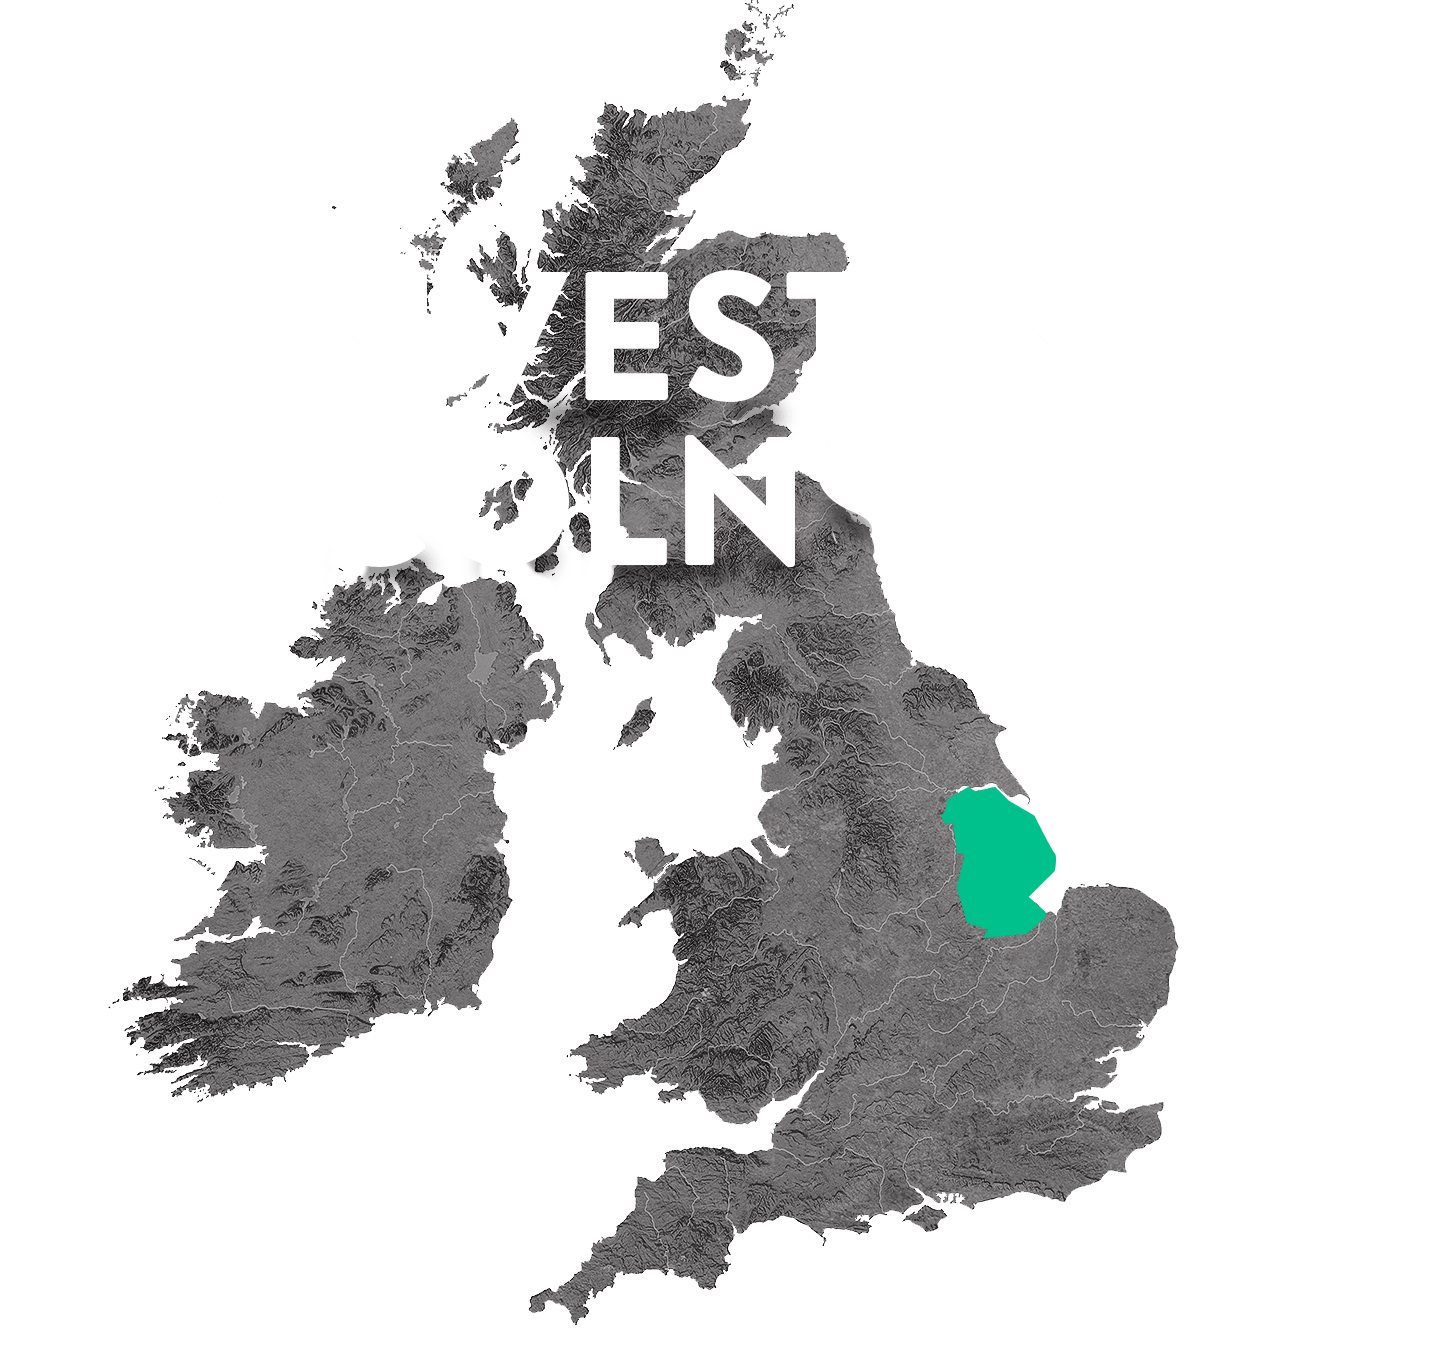 Greater Lincolnshire